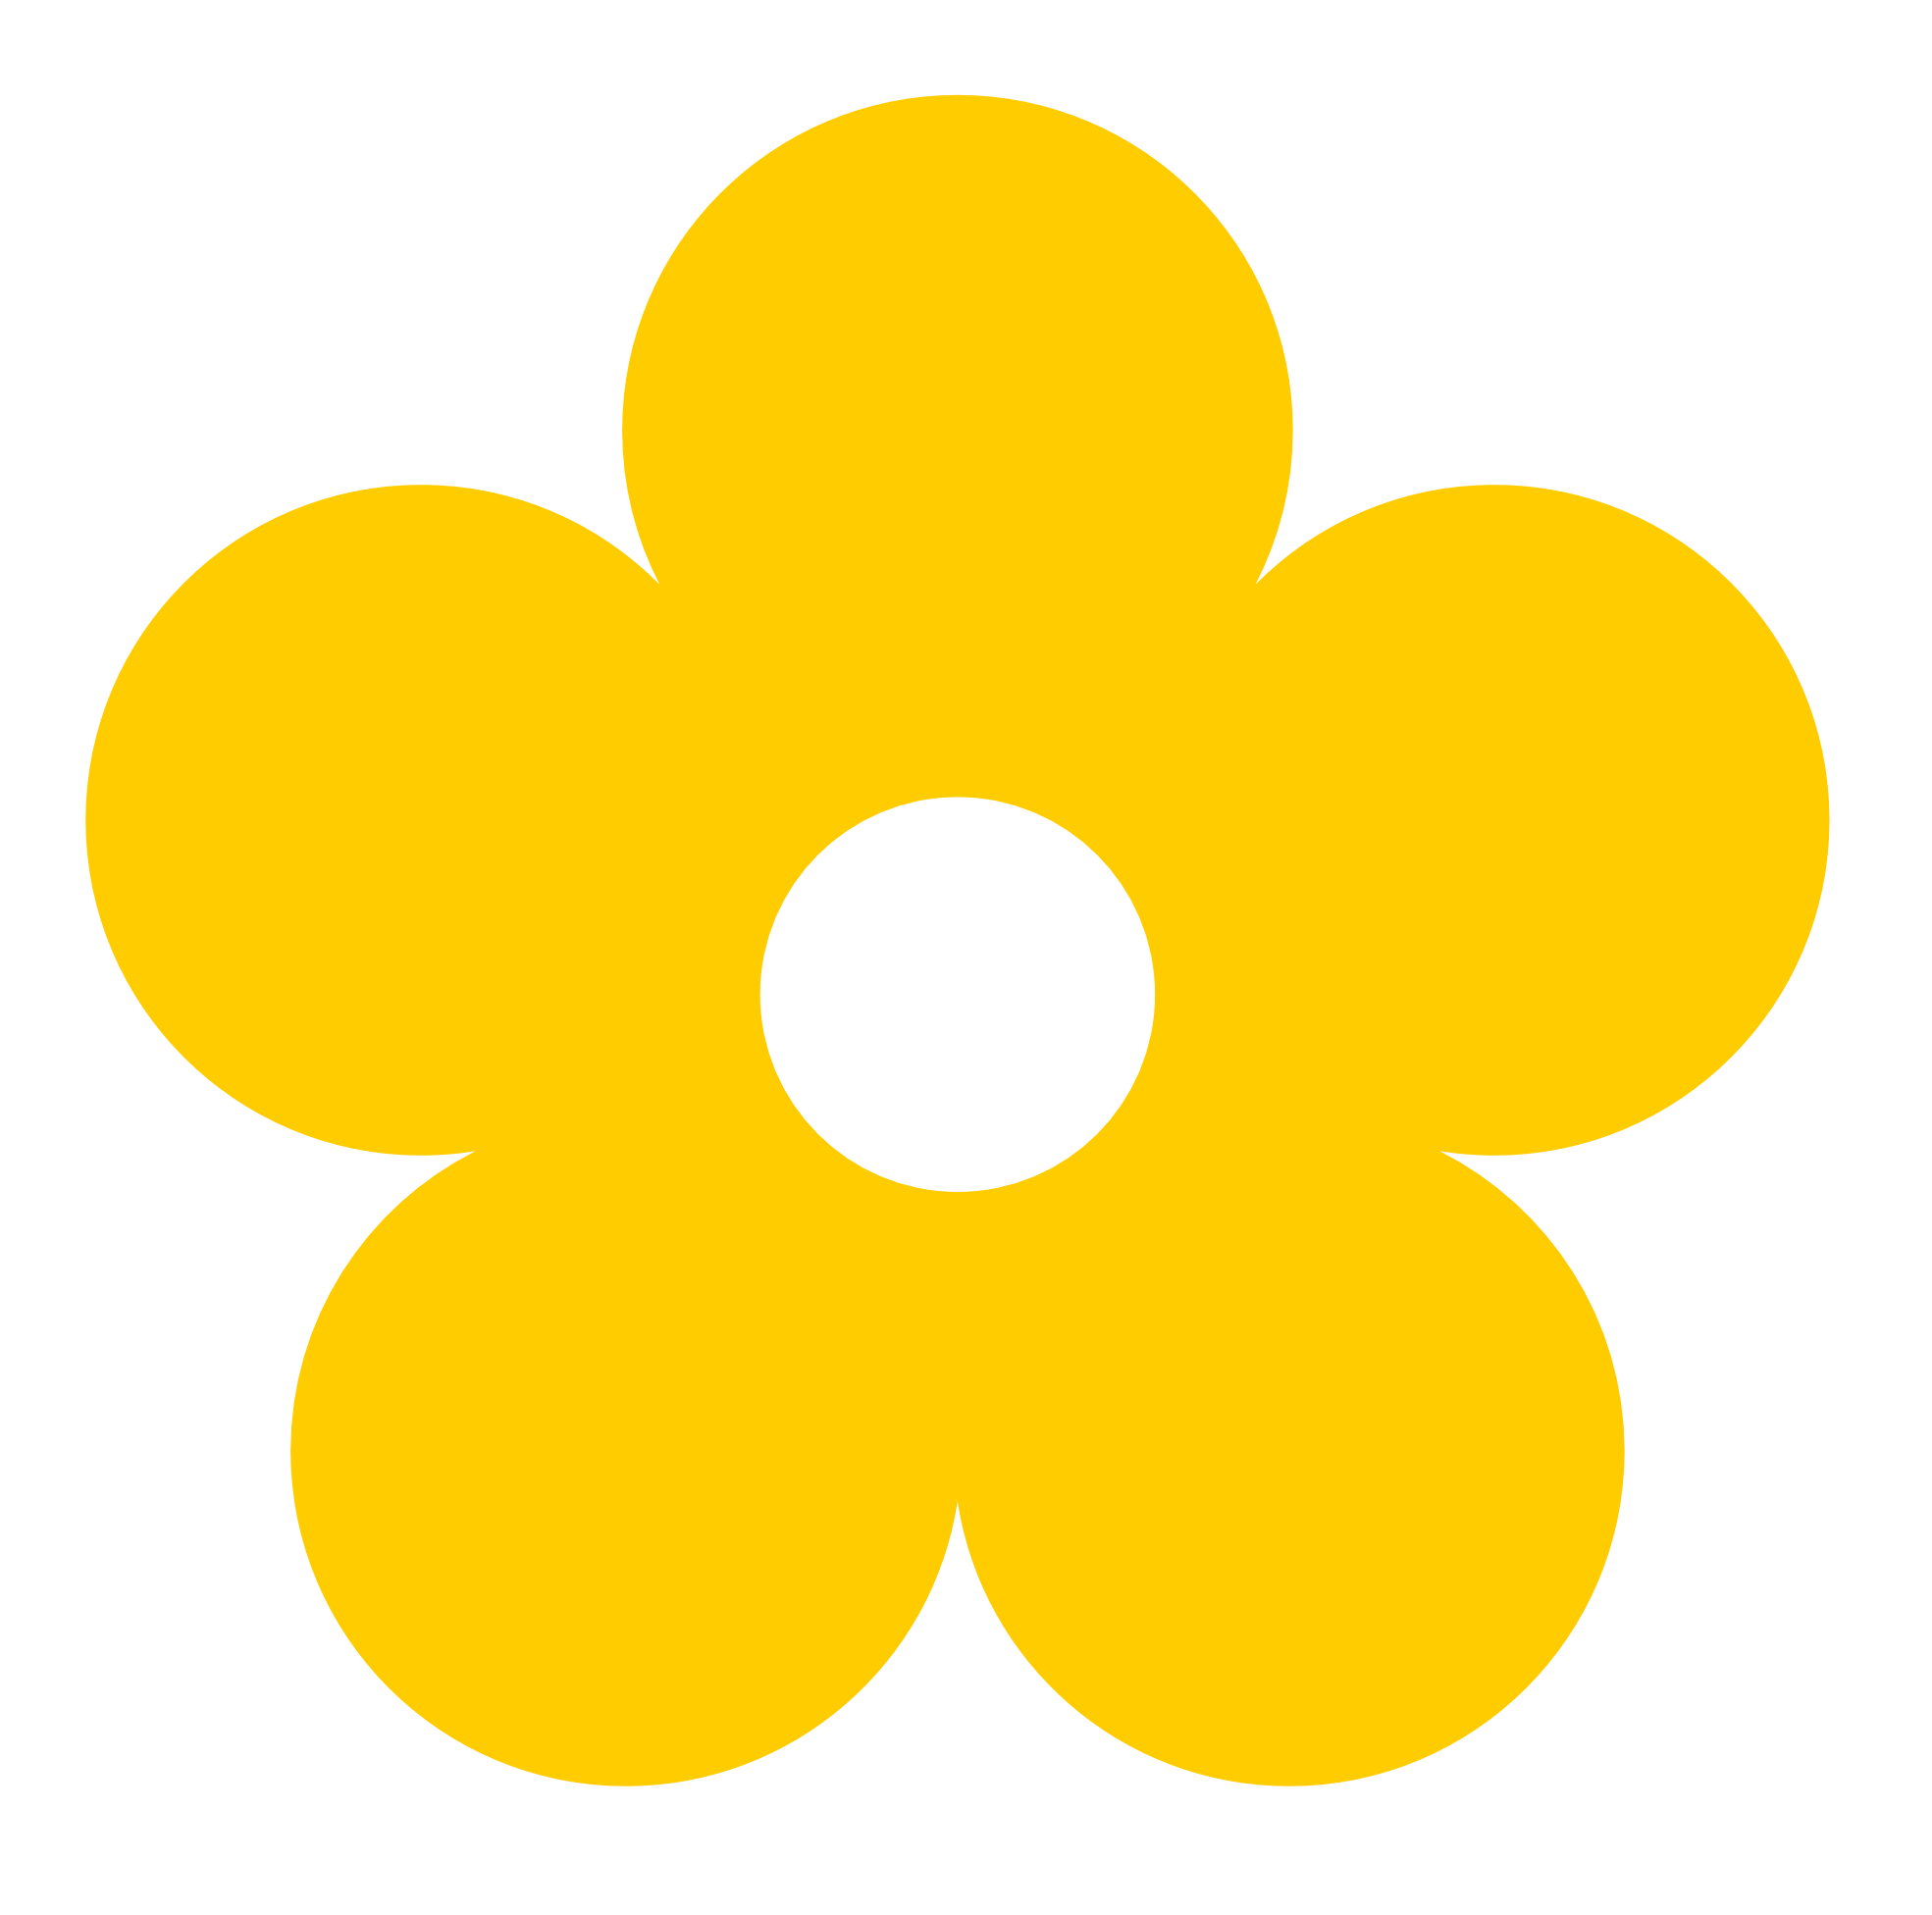 Free images yellow.